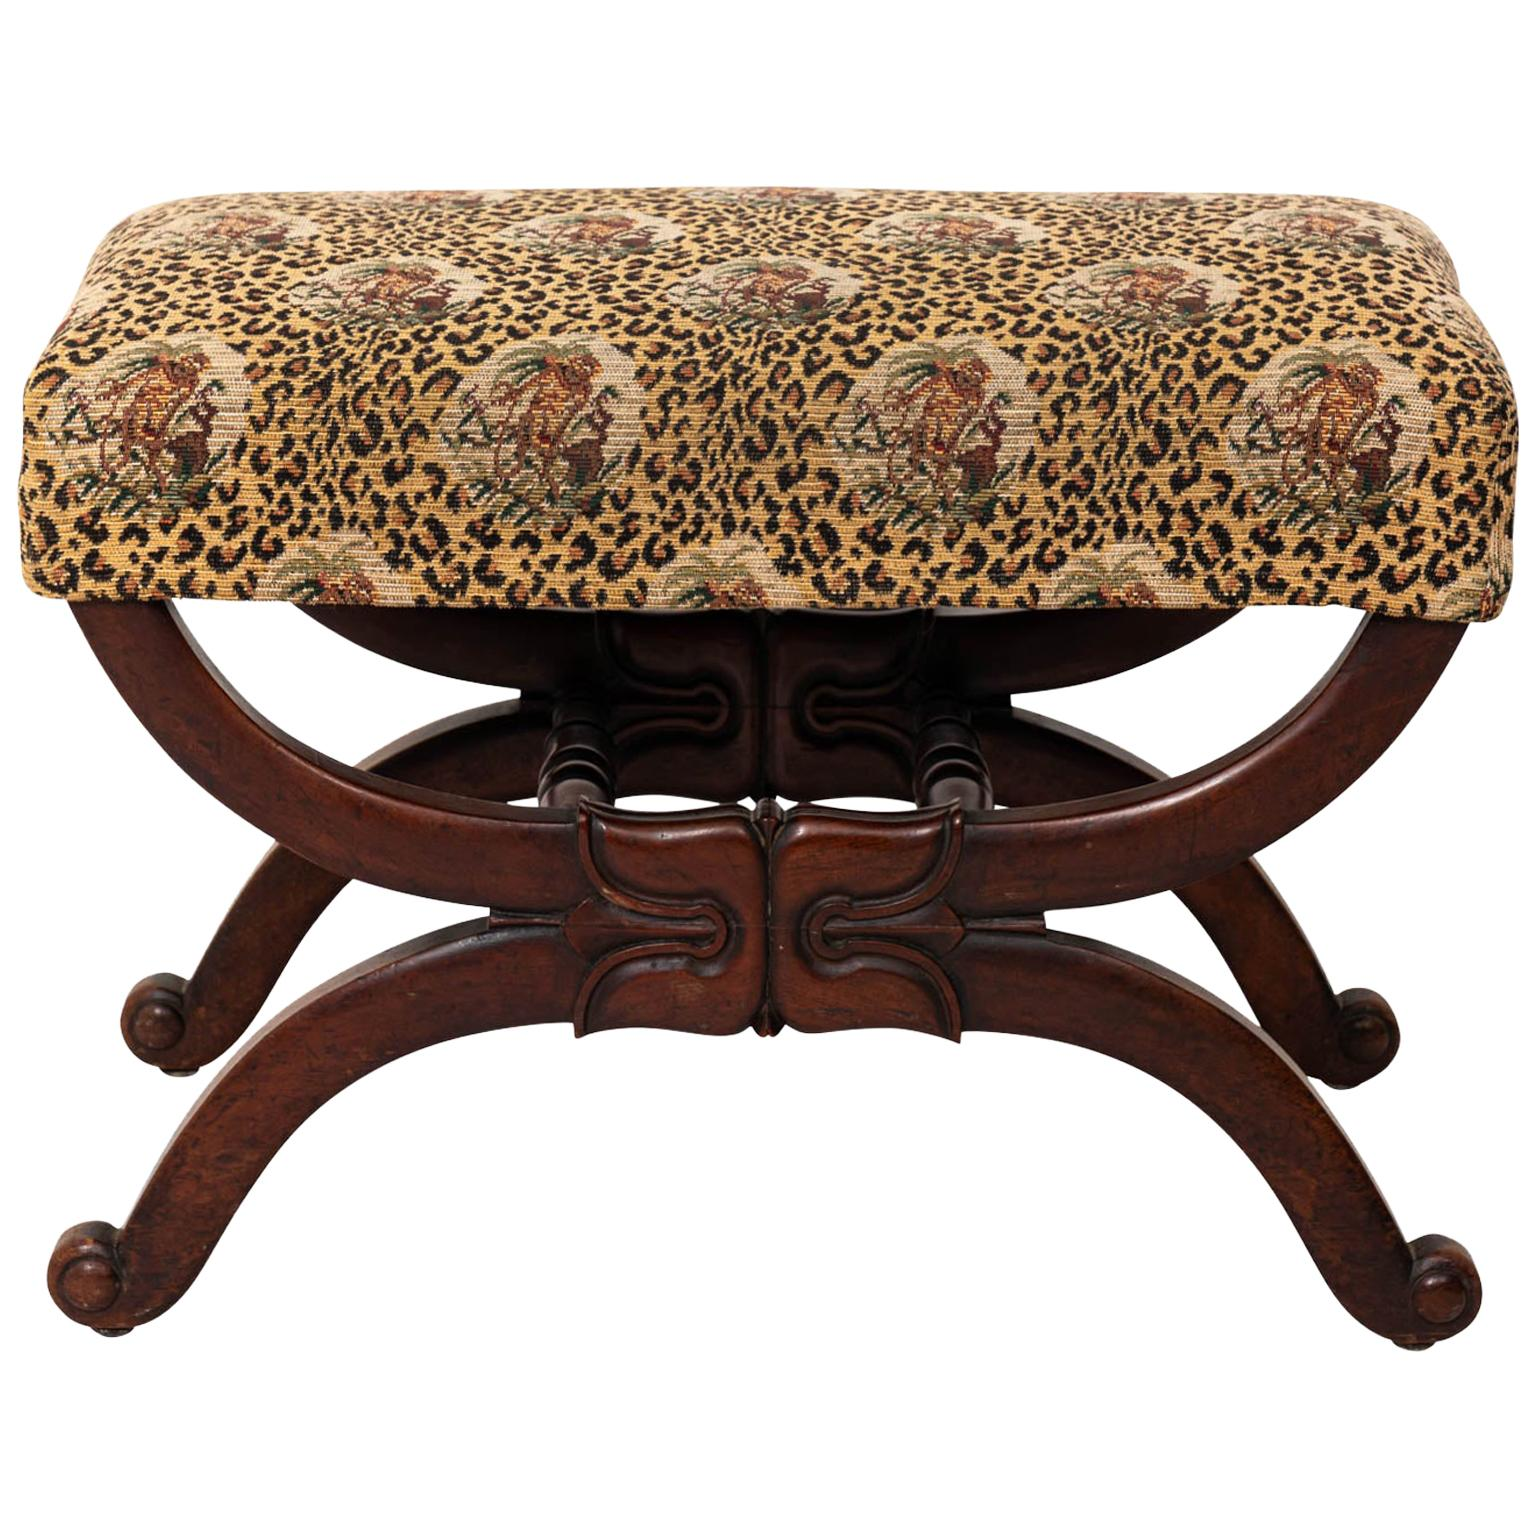 Upholstered William IV Style Bench